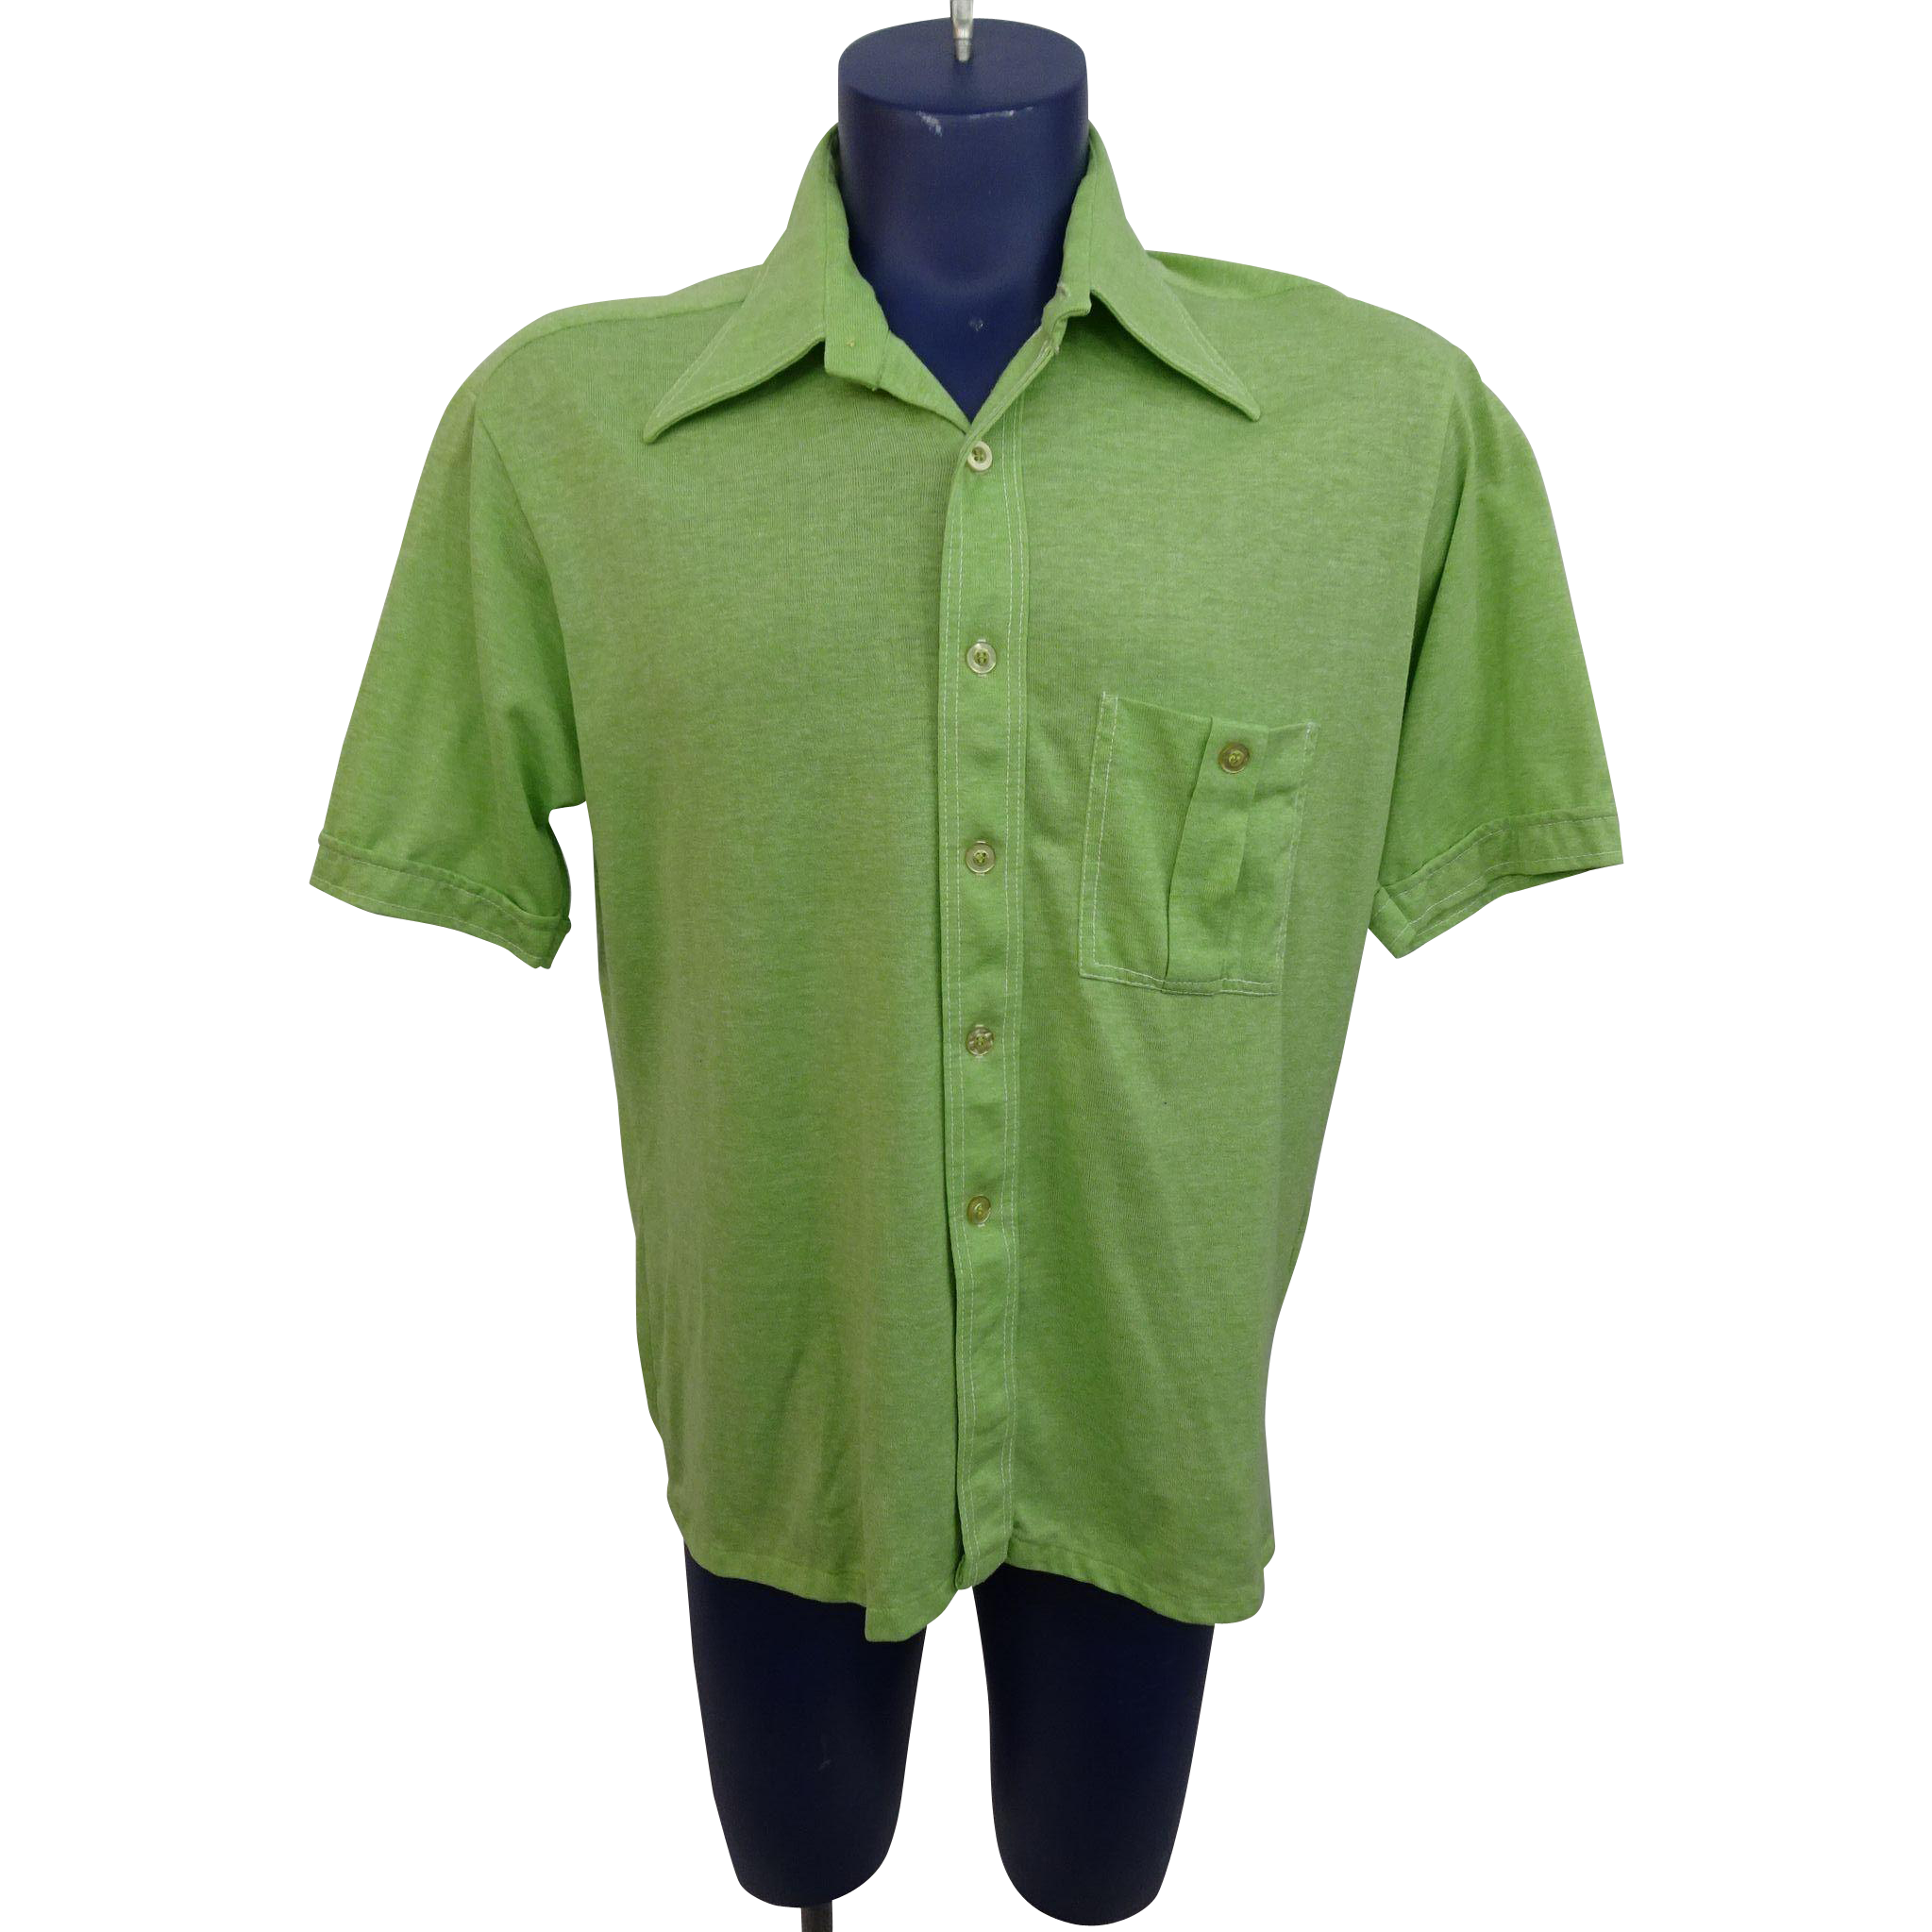 Vintage 1970s Mens Shirt Lime Green Donegal Tailored Button Front